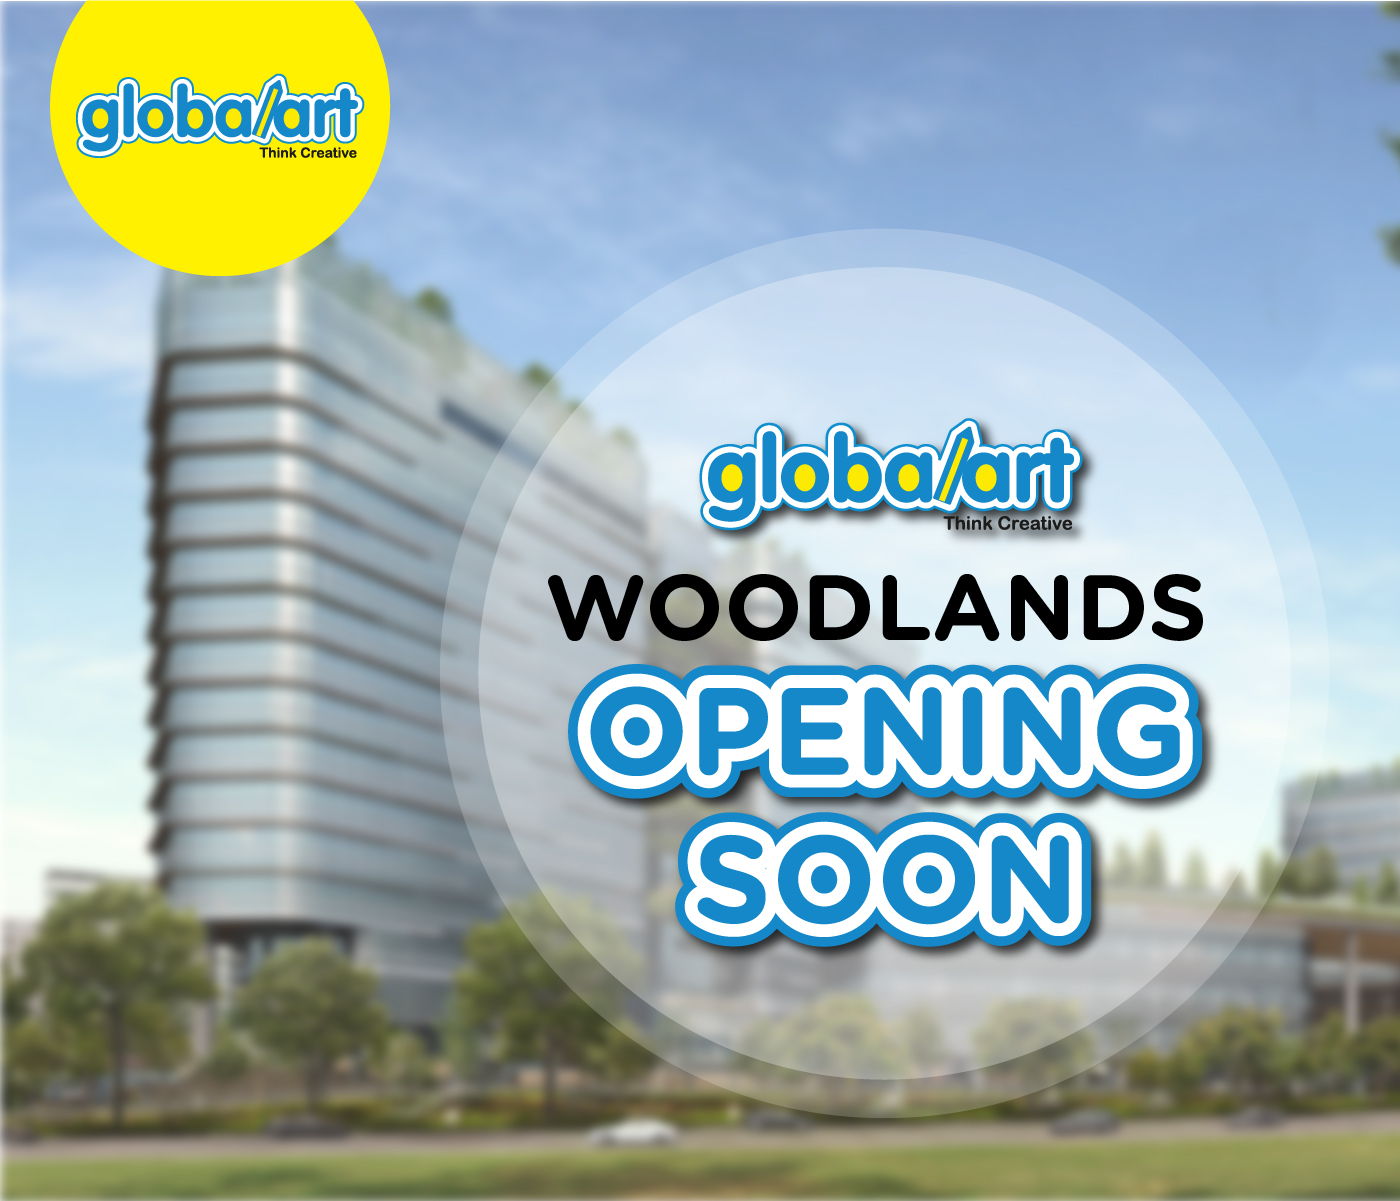 Woodlands Opening Soon